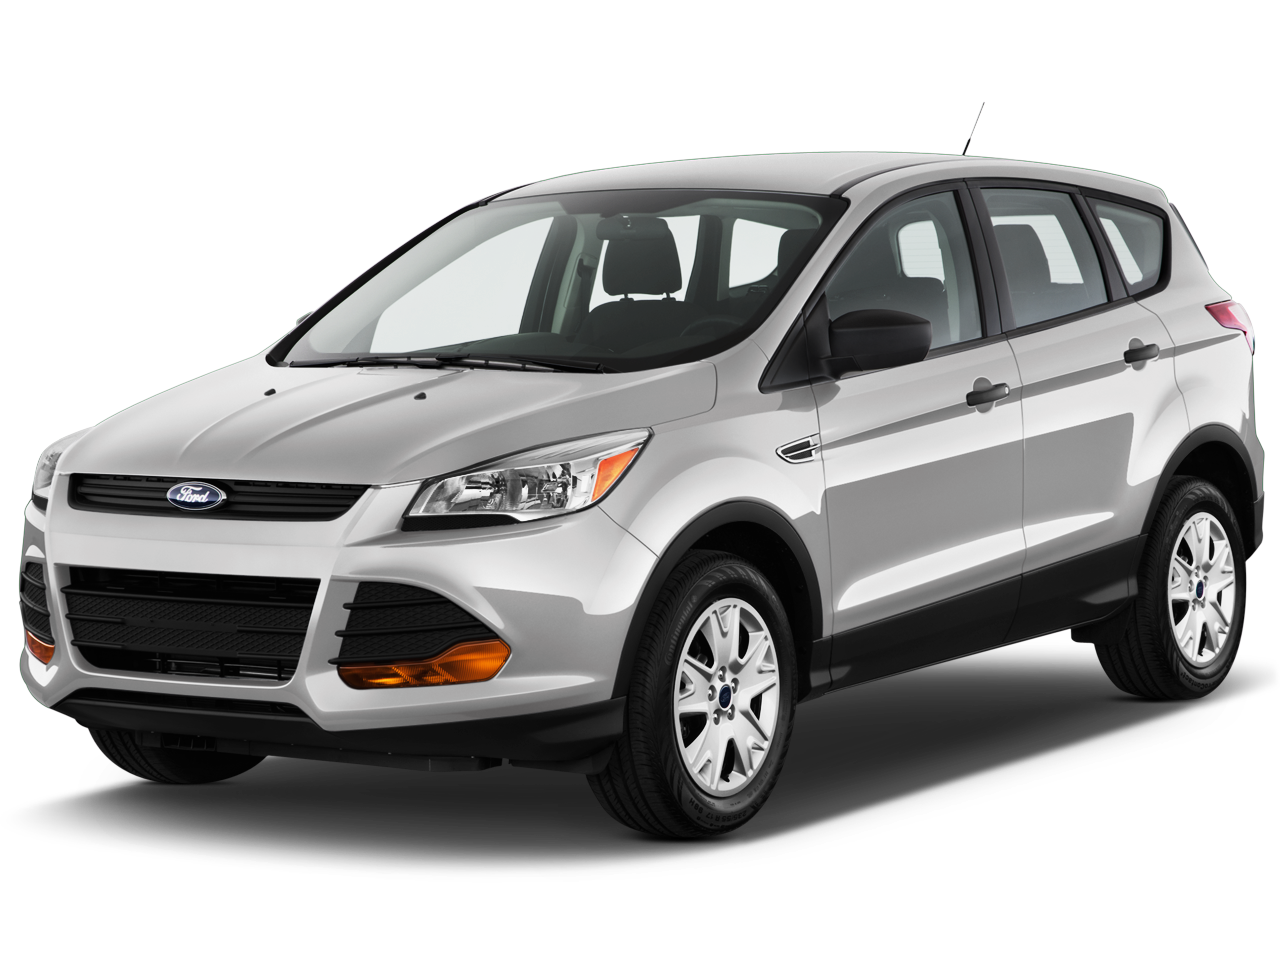 2014 ford escape titanium near saint charles il zimmerman ford. Cars Review. Best American Auto & Cars Review